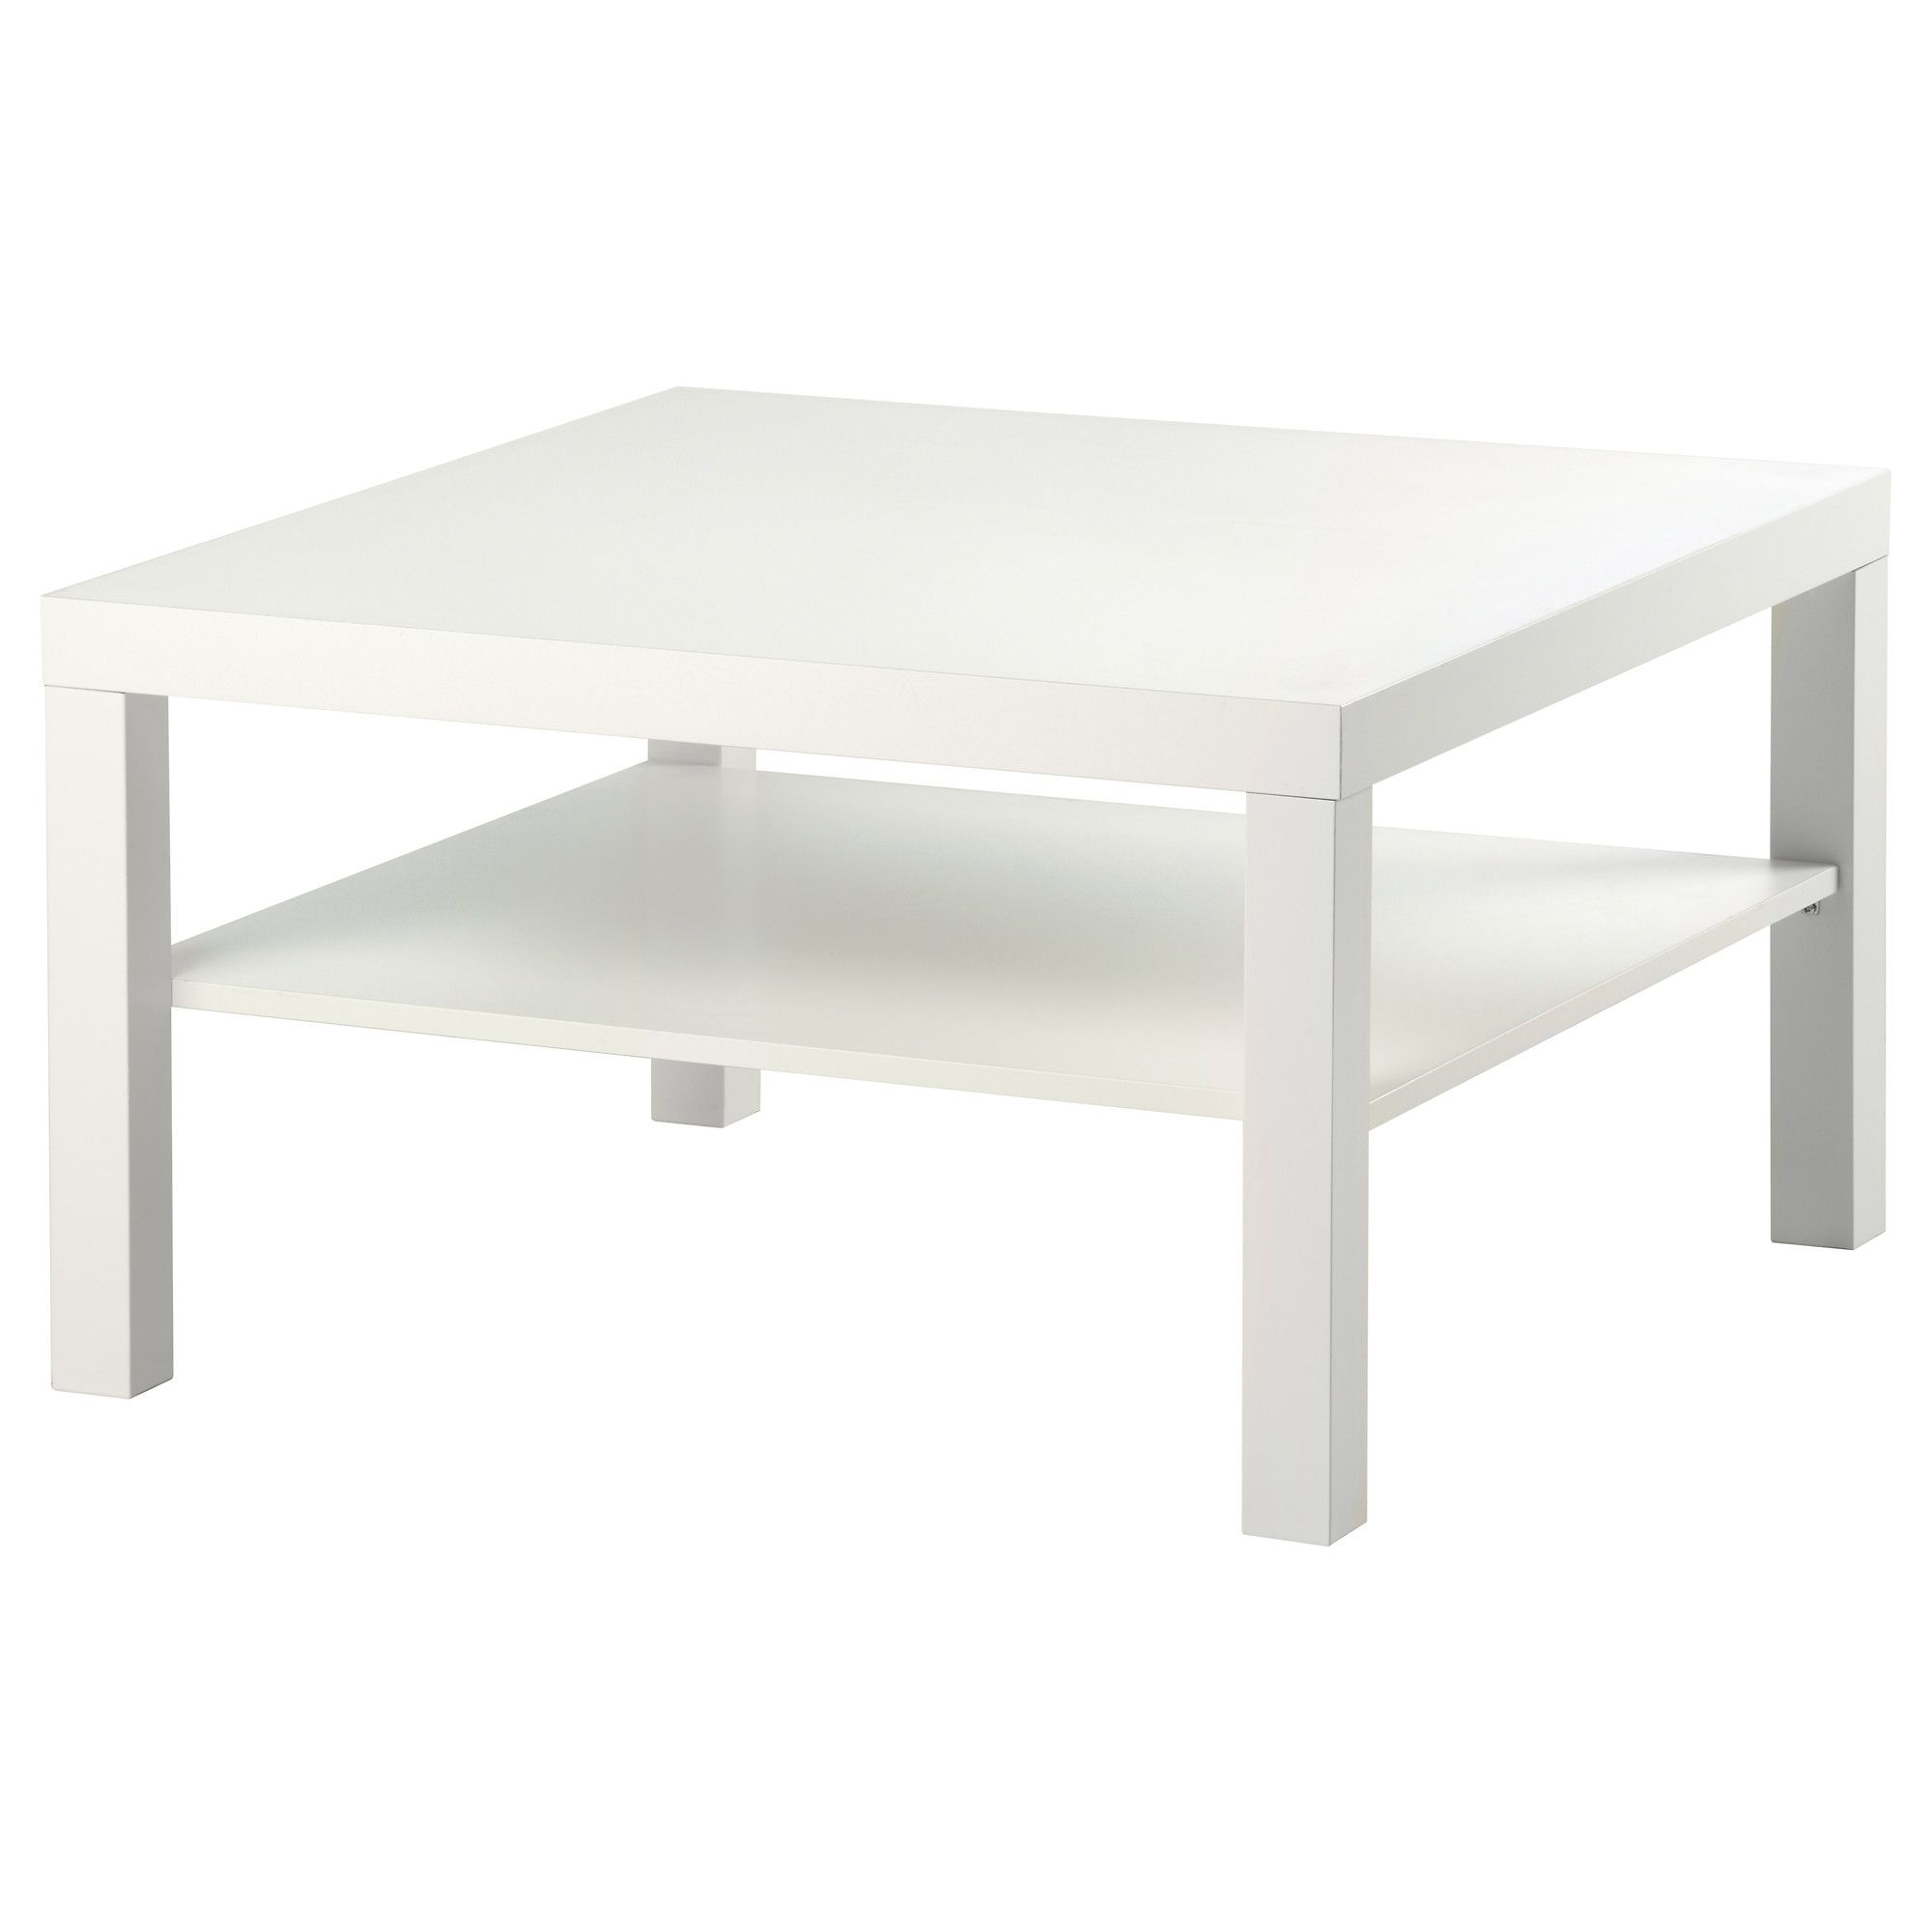 Lack Coffee Table White Ikea Use This As A Play For Emily